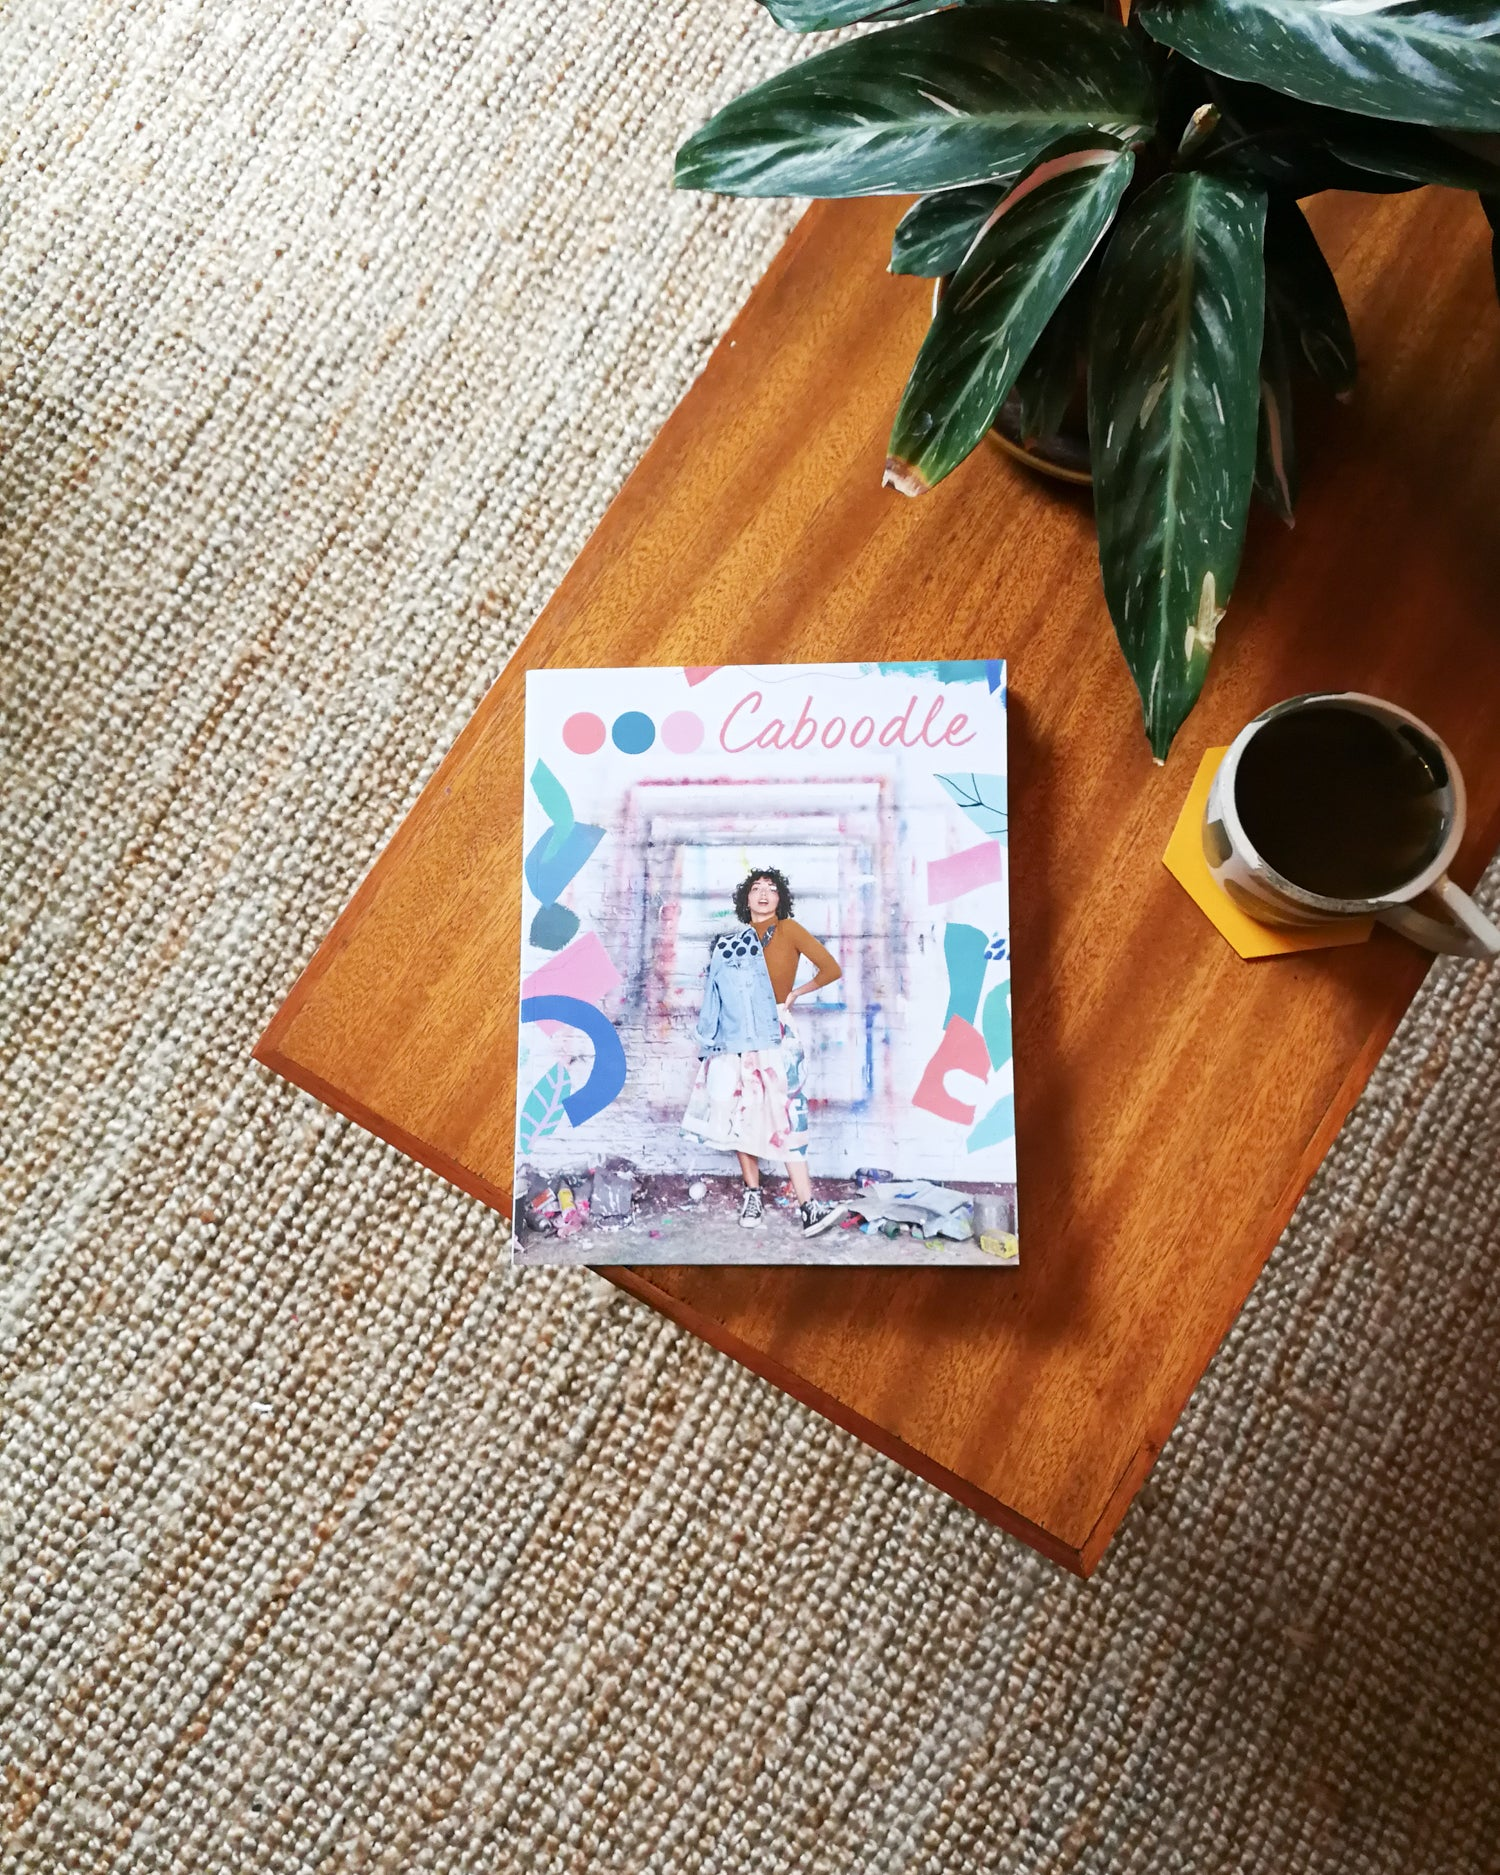 Caboodle Magazine on a coffee table